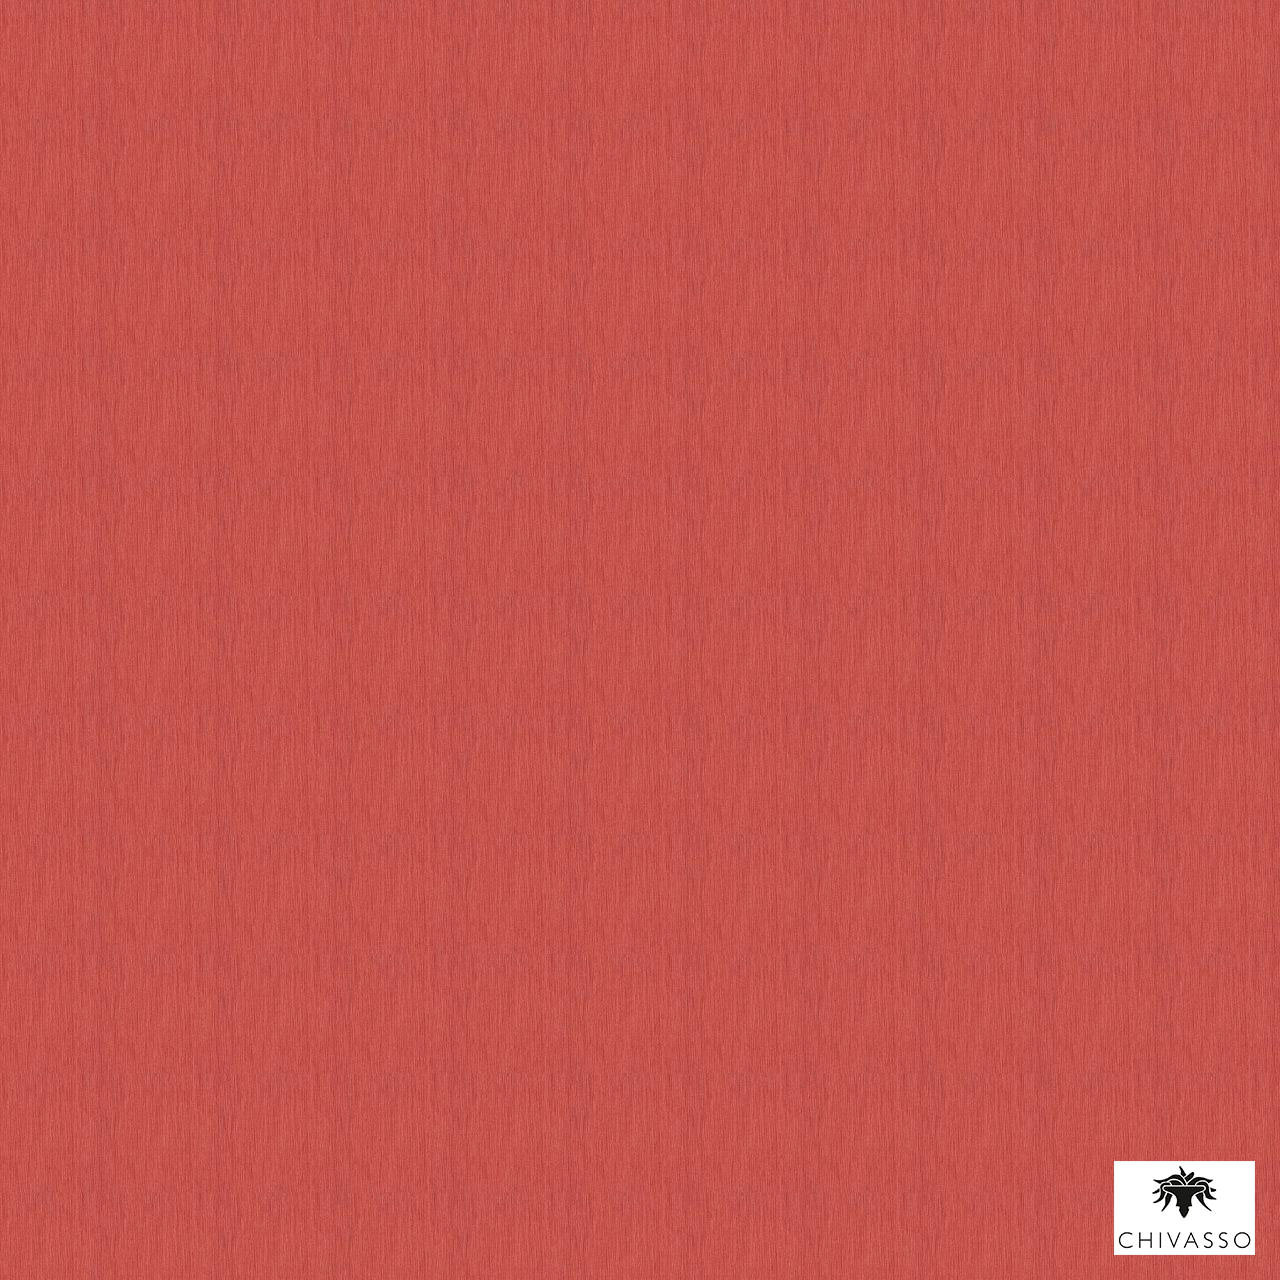 Chivasso - Colour Block - Ch9112-011  | Wallpaper, Wallcovering - Plain, Red, Domestic Use